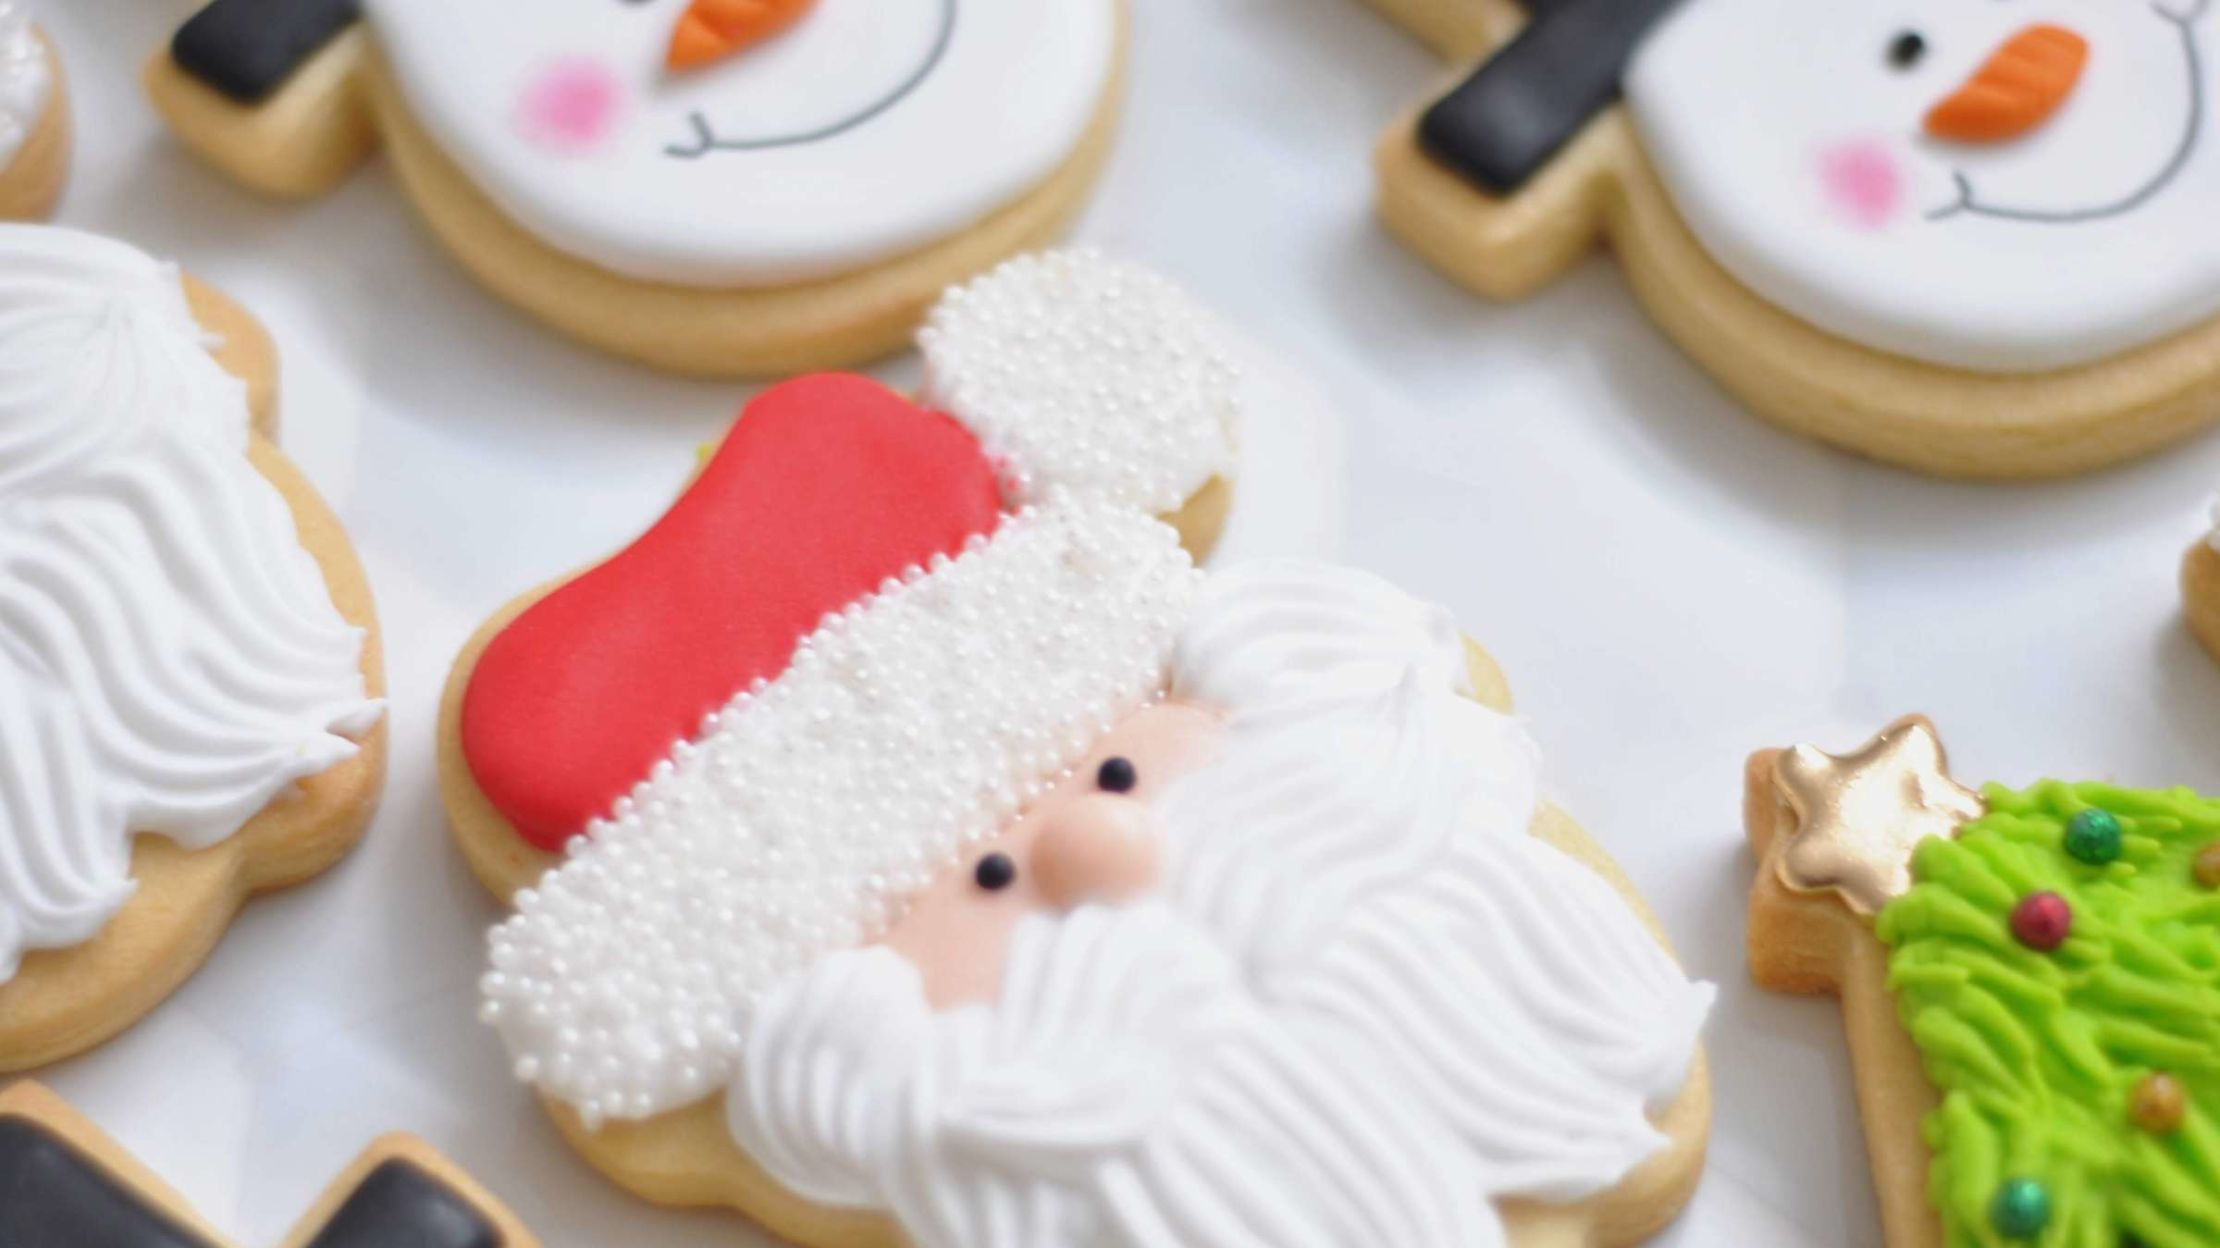 10 Essential Kitchen Gadgets for Christmas Cookies and Desserts